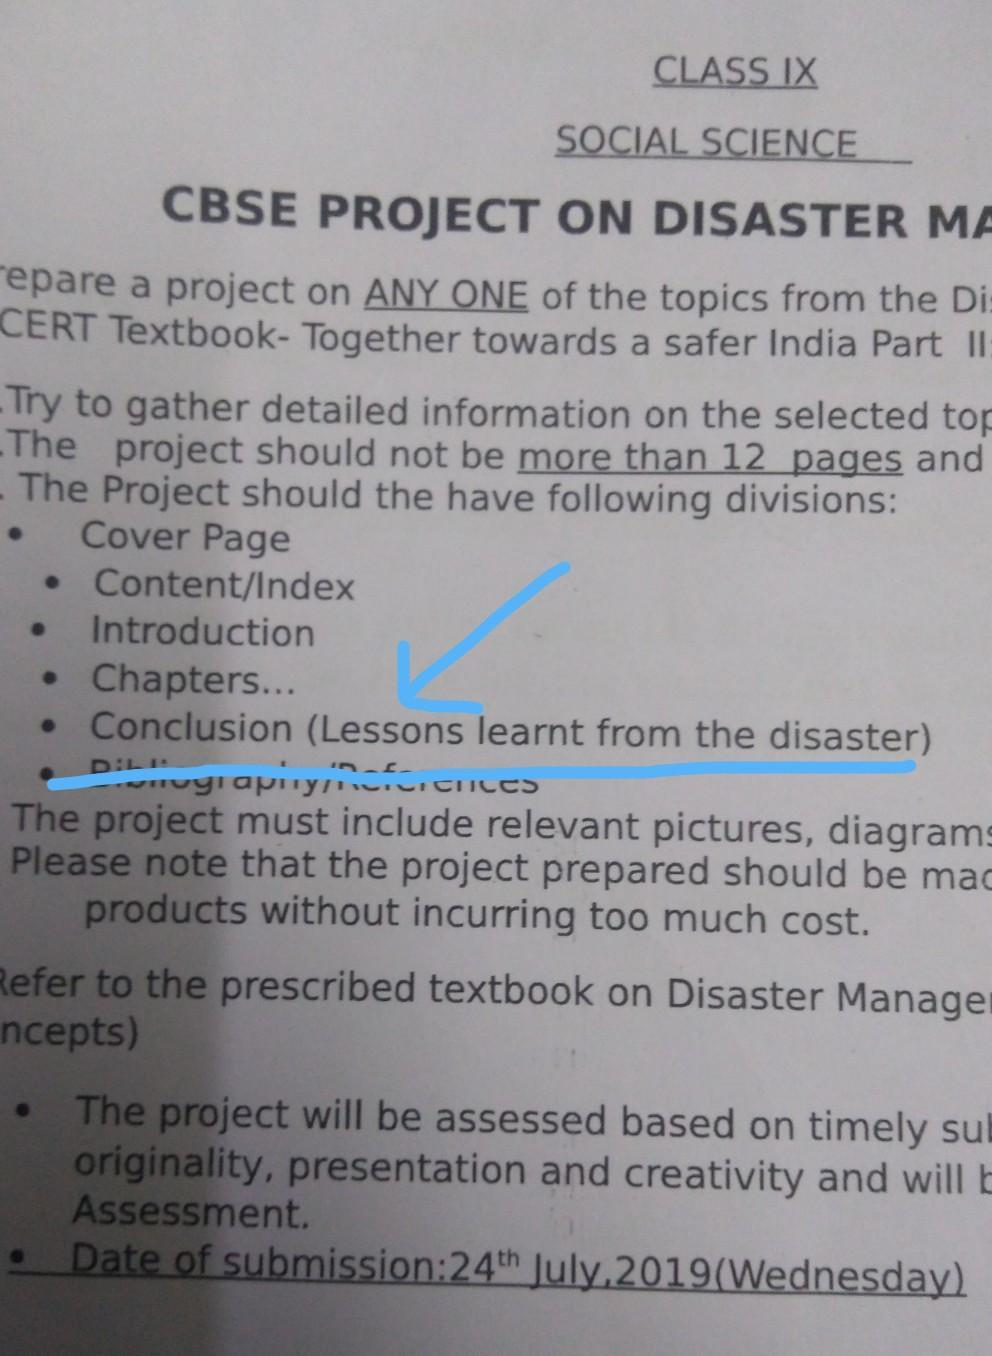 Conclusion Of Disaster Management - Images All Disaster